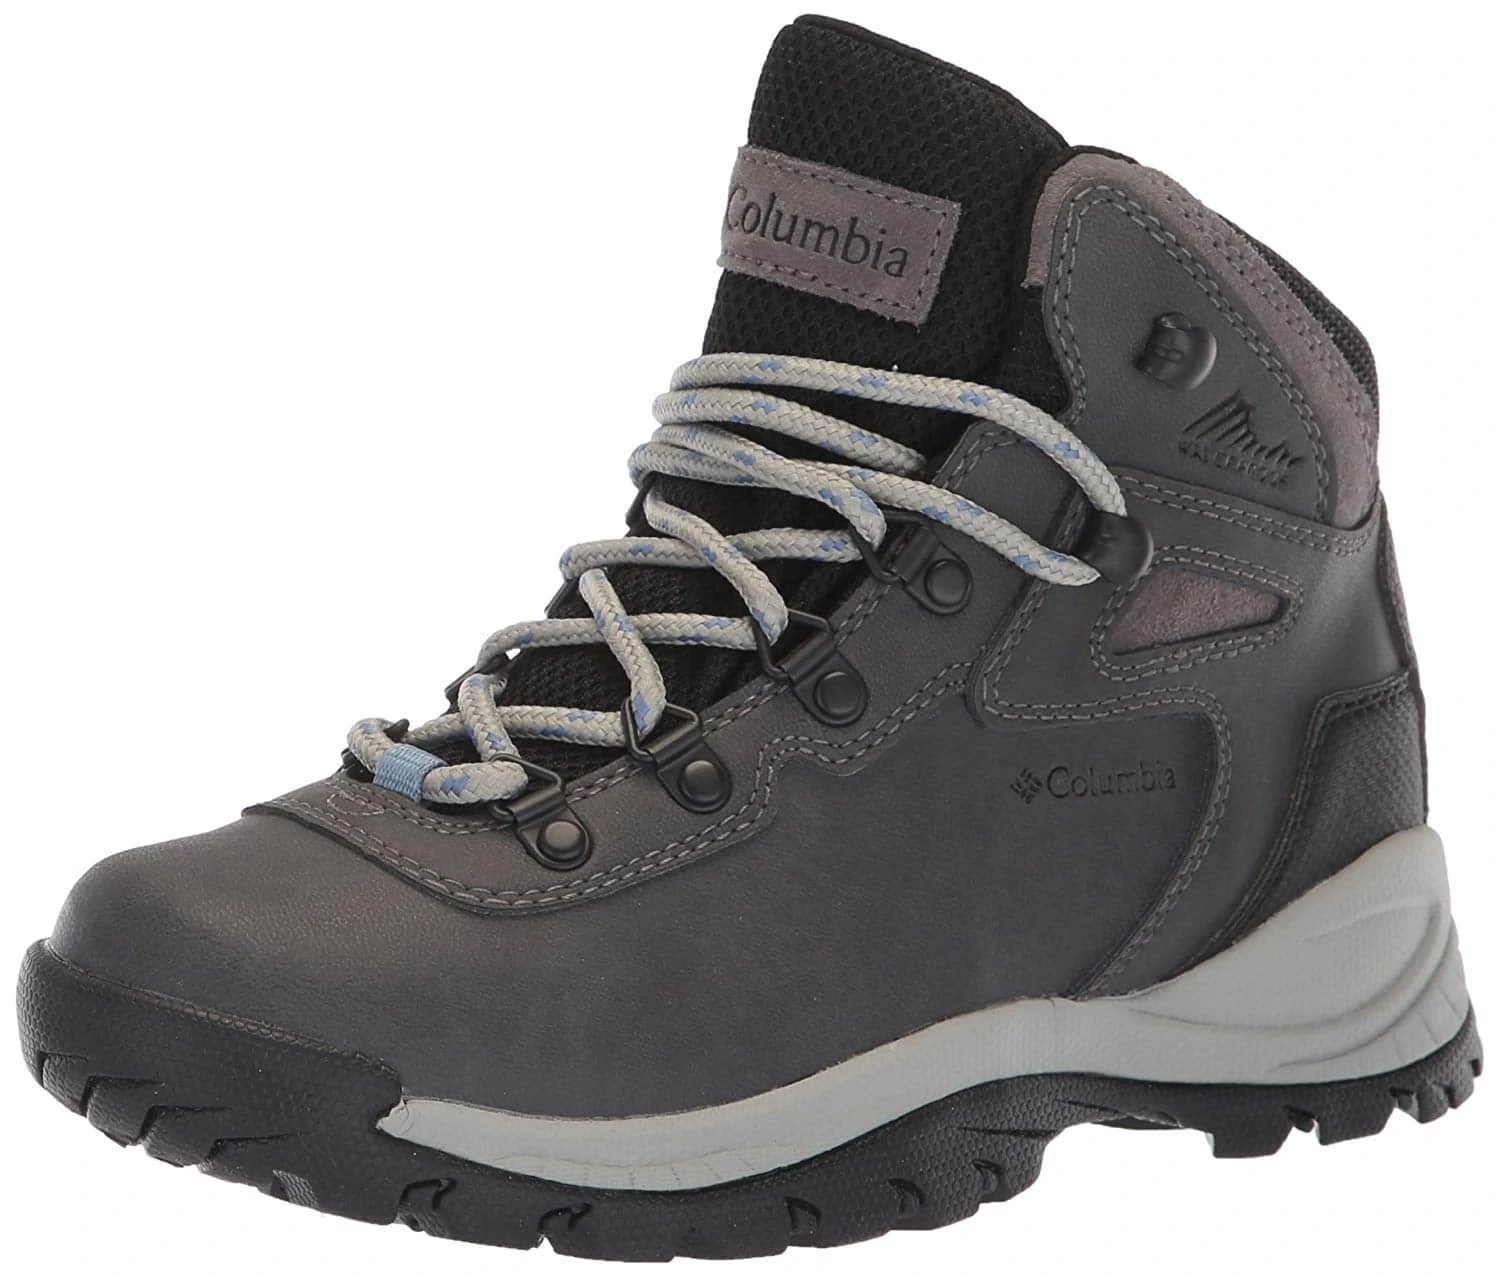 Columbia Women's Newton Ridge Plus Hiking Boot Side